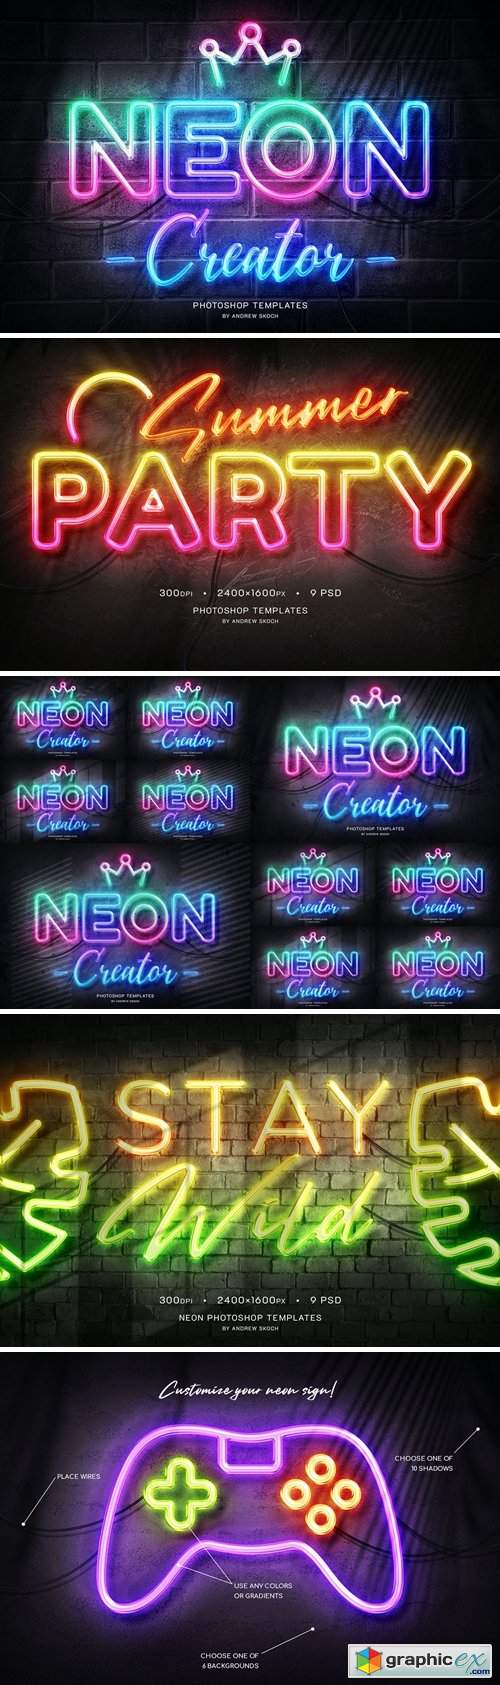 Neon Wall Sign Templates